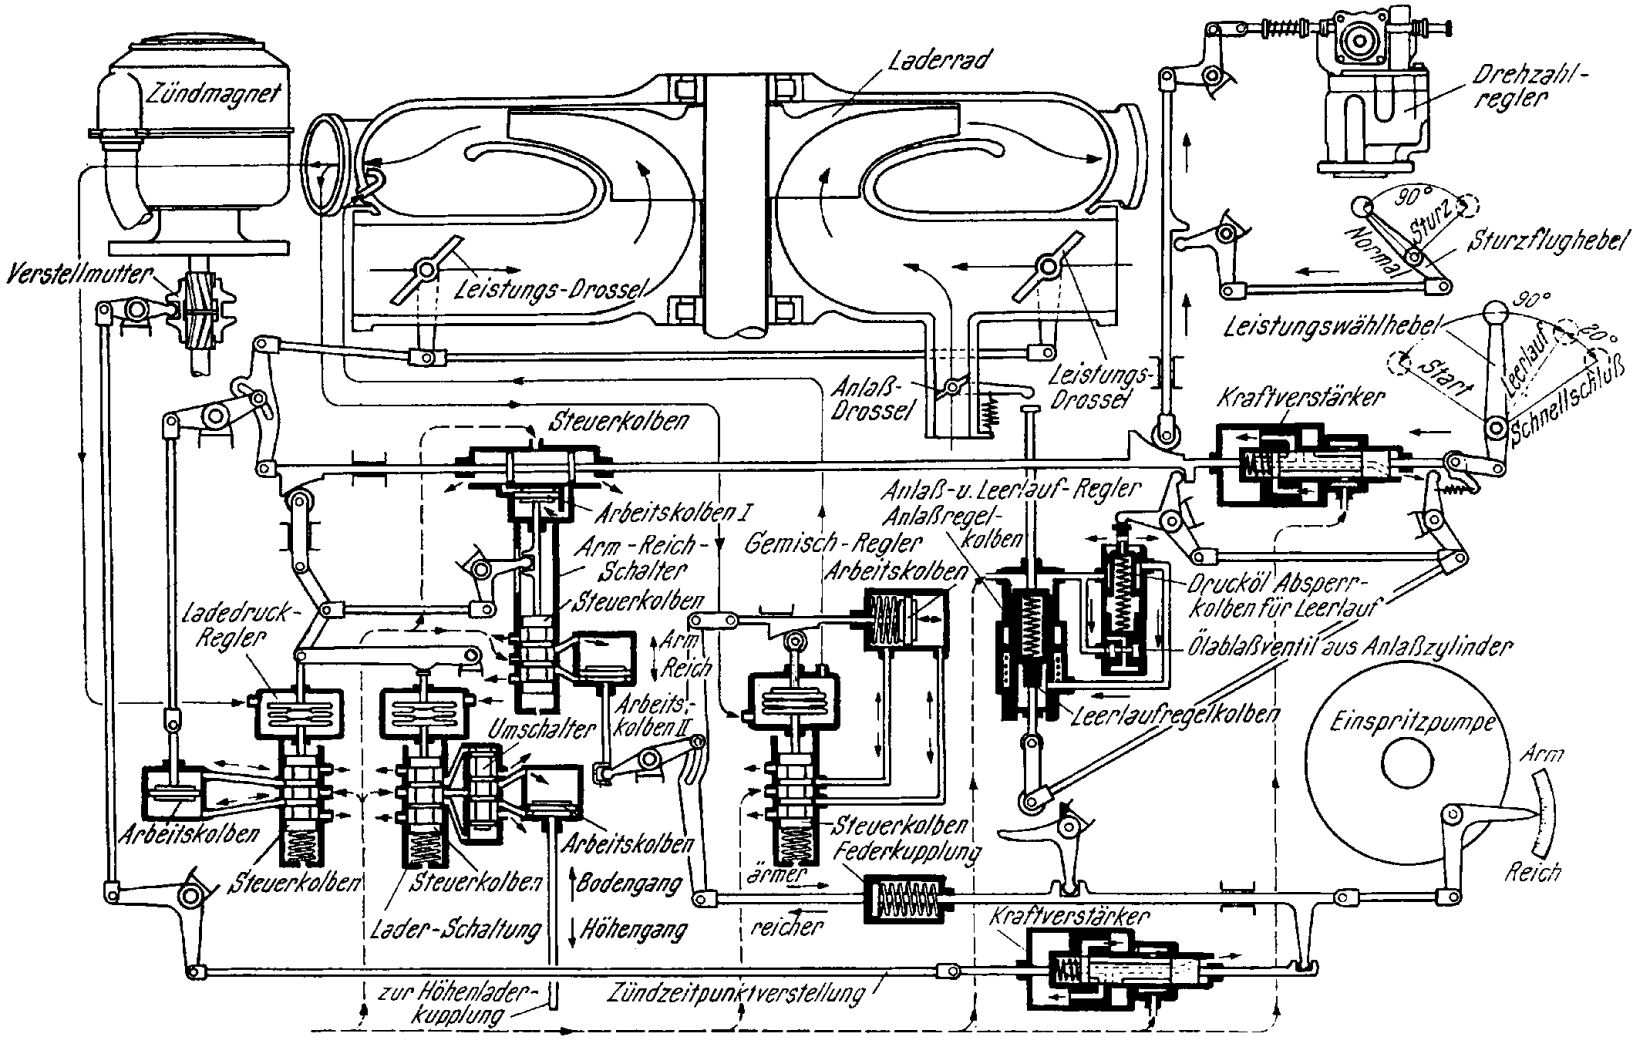 Stupendous Wiring Diagram For Heinkel Test Rig Online Wiring Diagram Wiring Digital Resources Bemuashebarightsorg